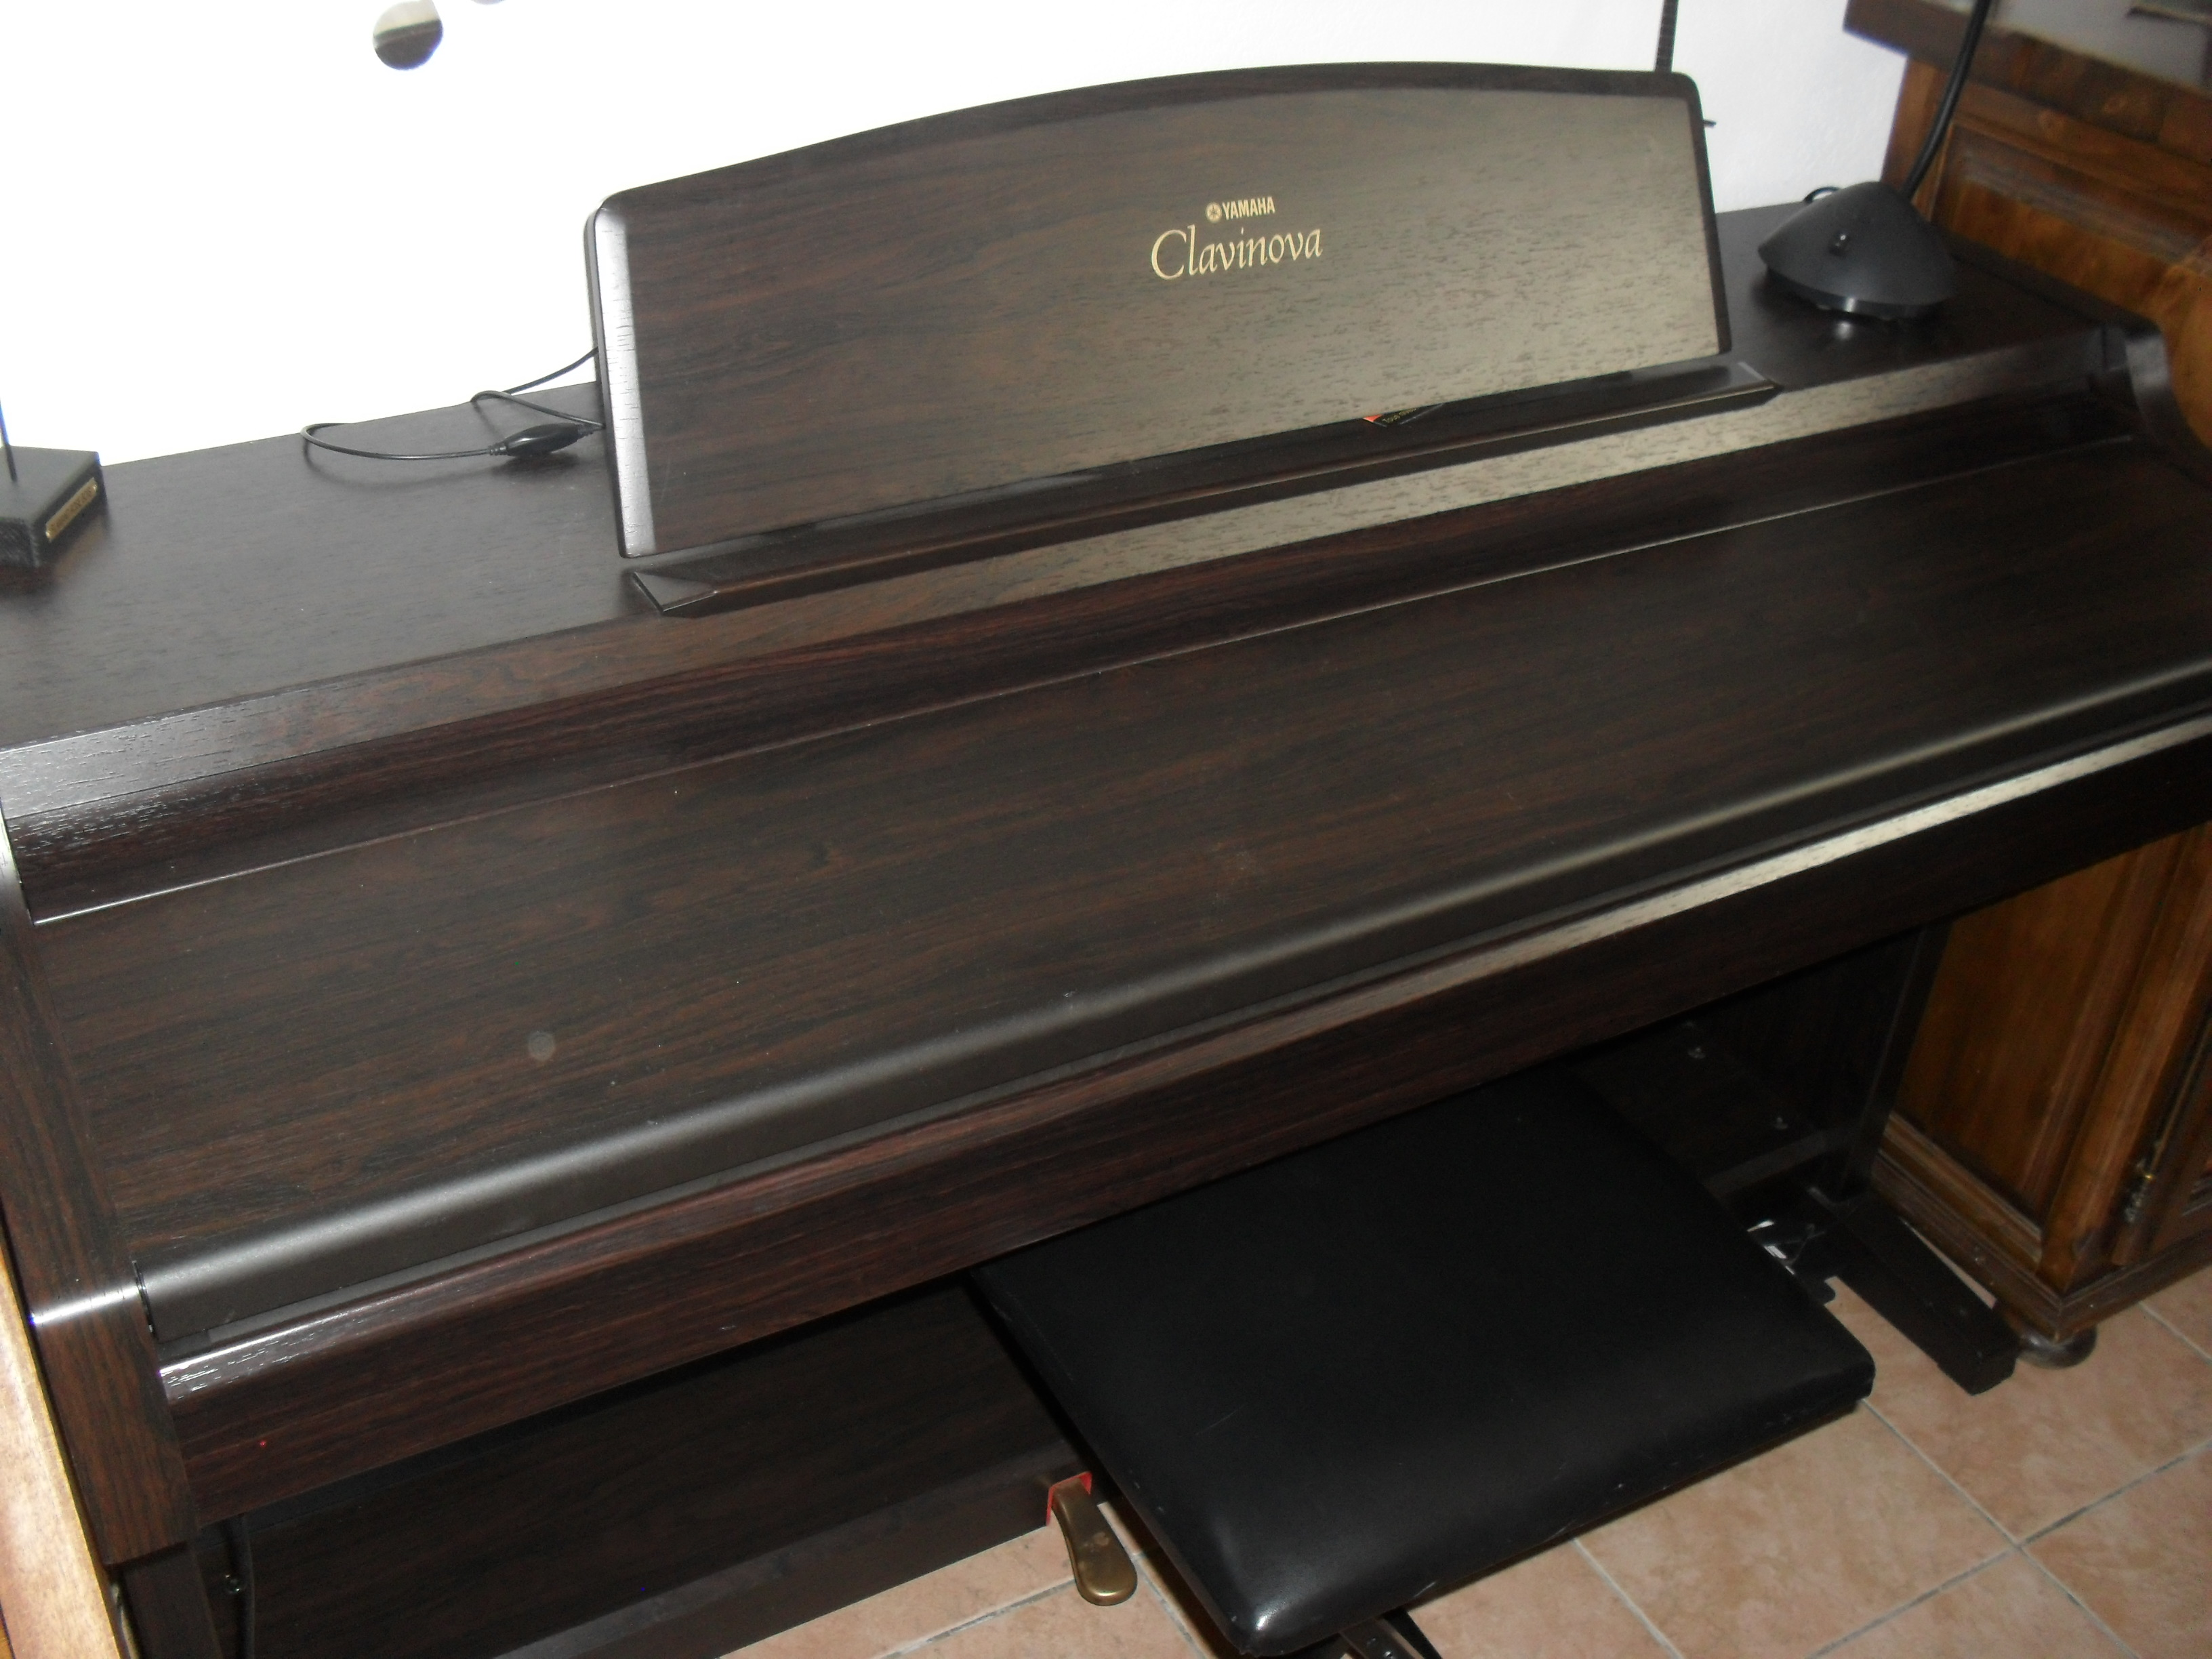 Photo yamaha clp 840 yamaha clavinova clp 840 290182 for Yamaha clp 840